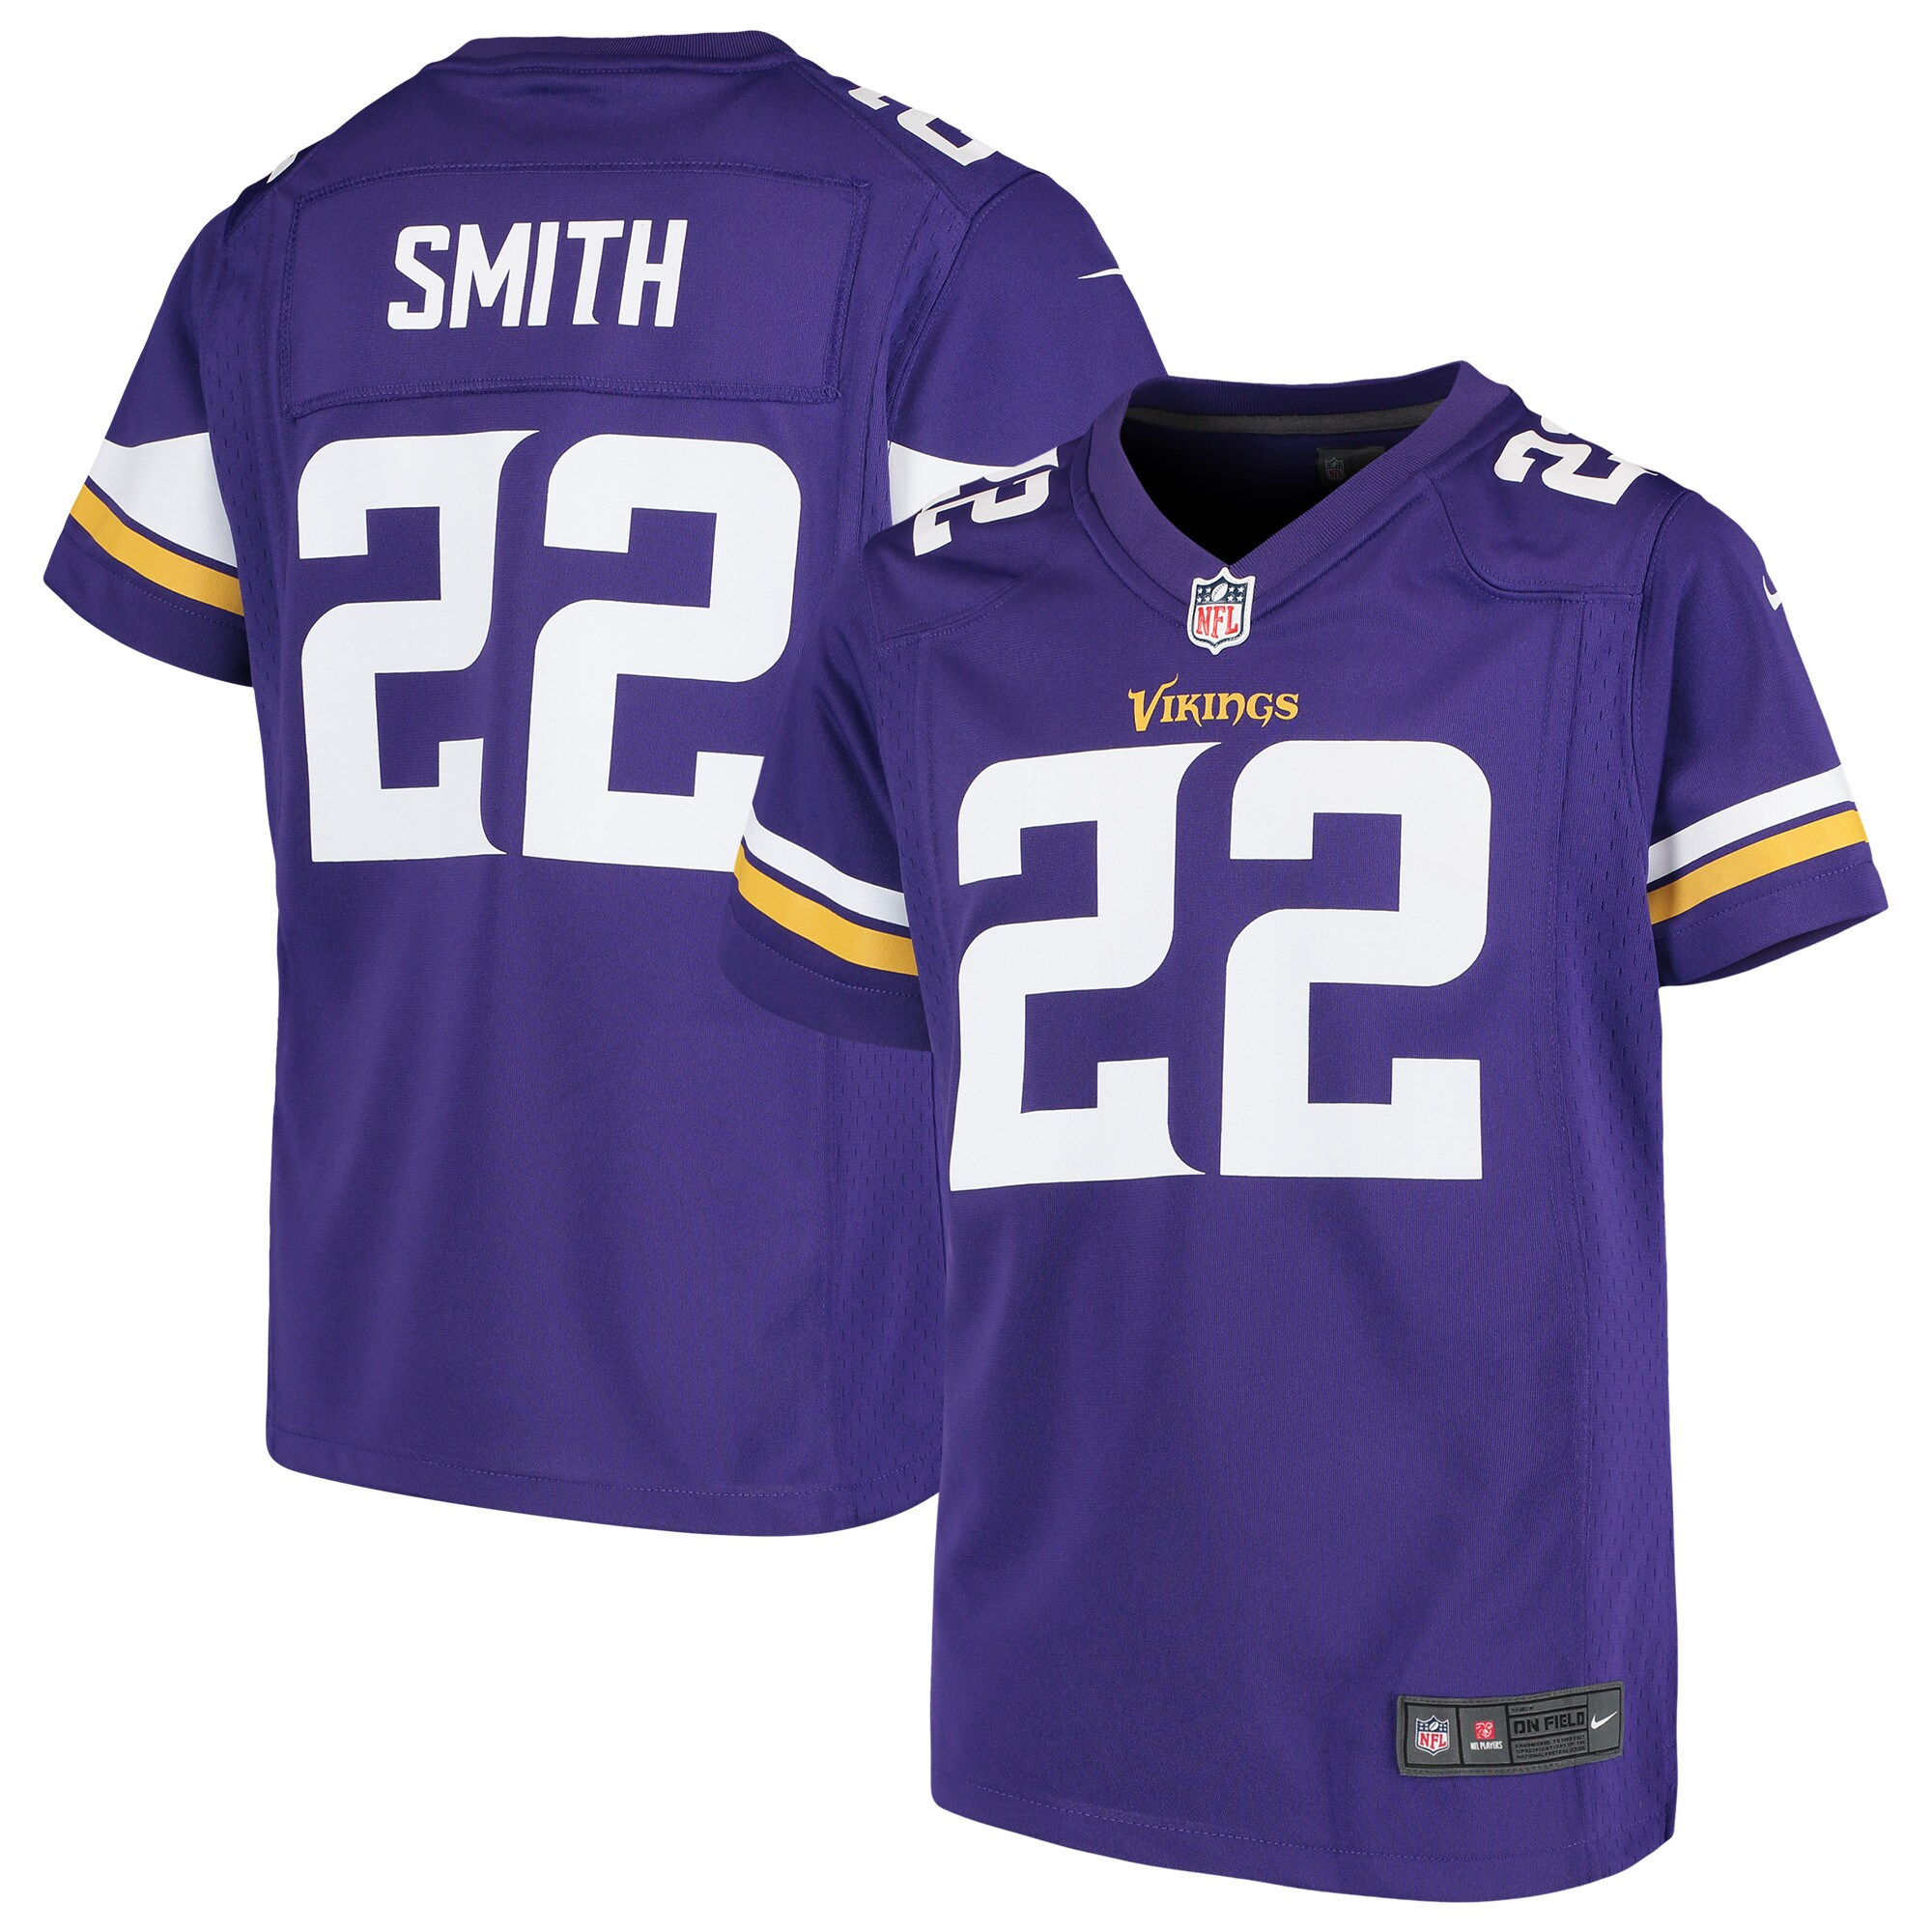 Harrison Smith Minnesota Vikings Nike Girls Youth Game Jersey - Purple